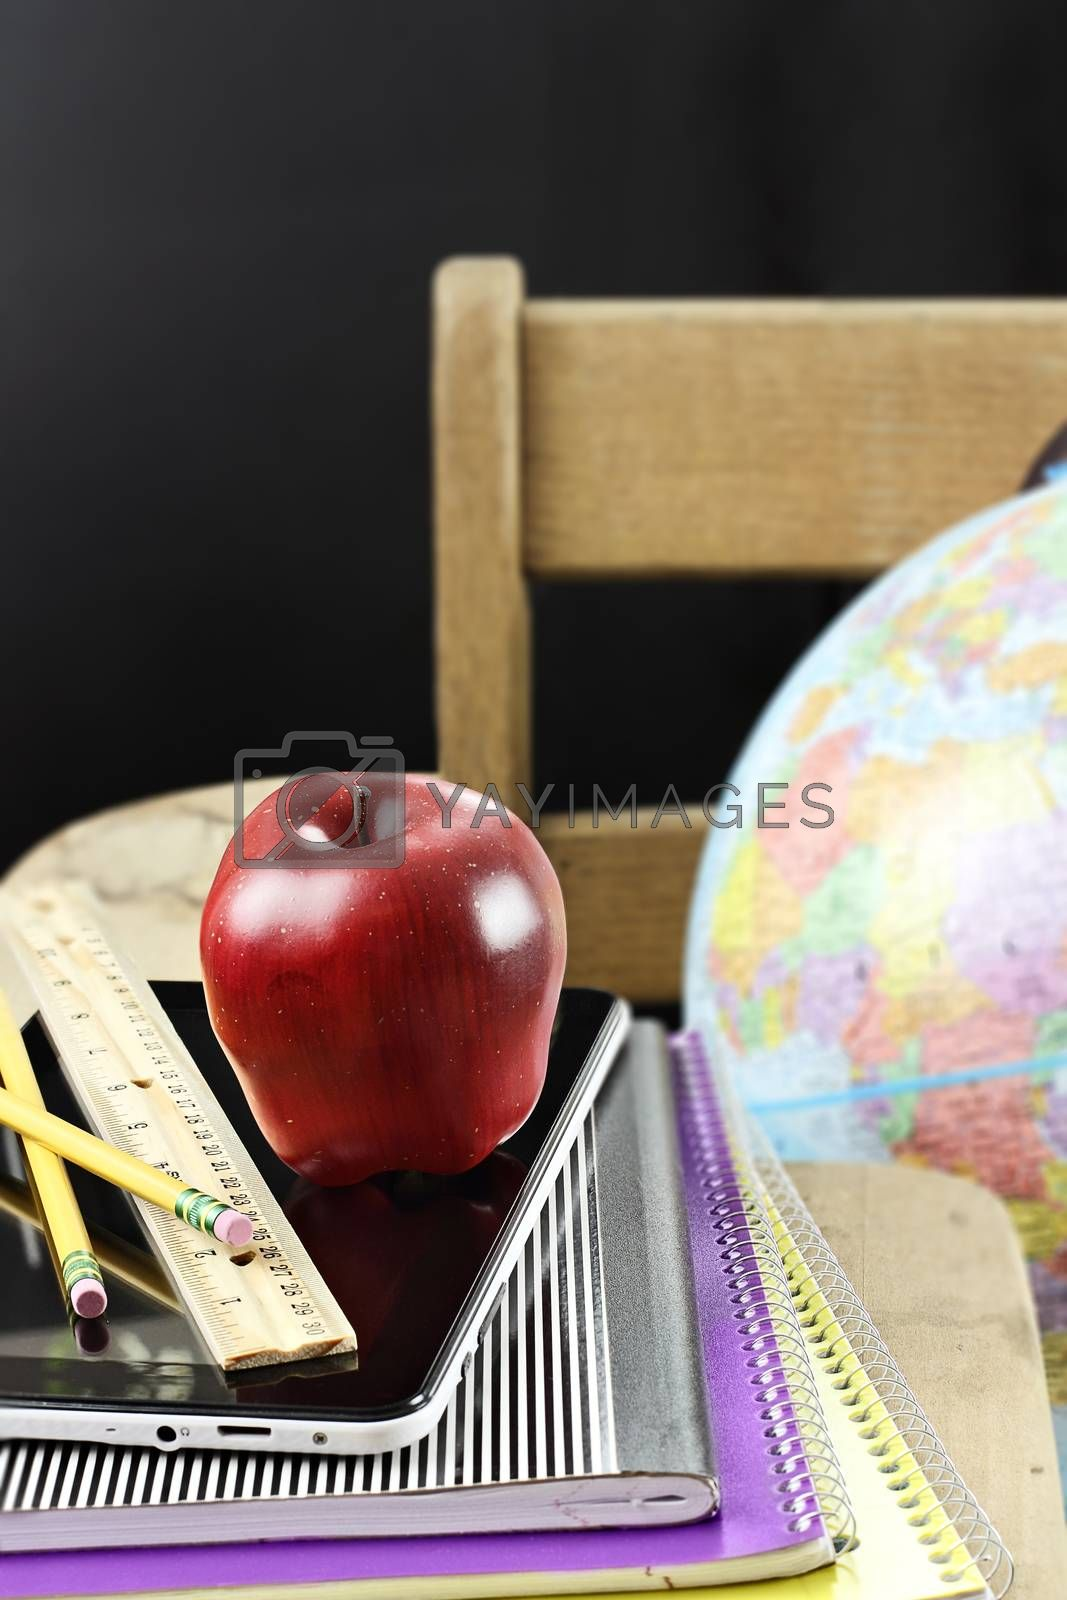 Red apple with school supplies and tablet sitting on an antique school desk.